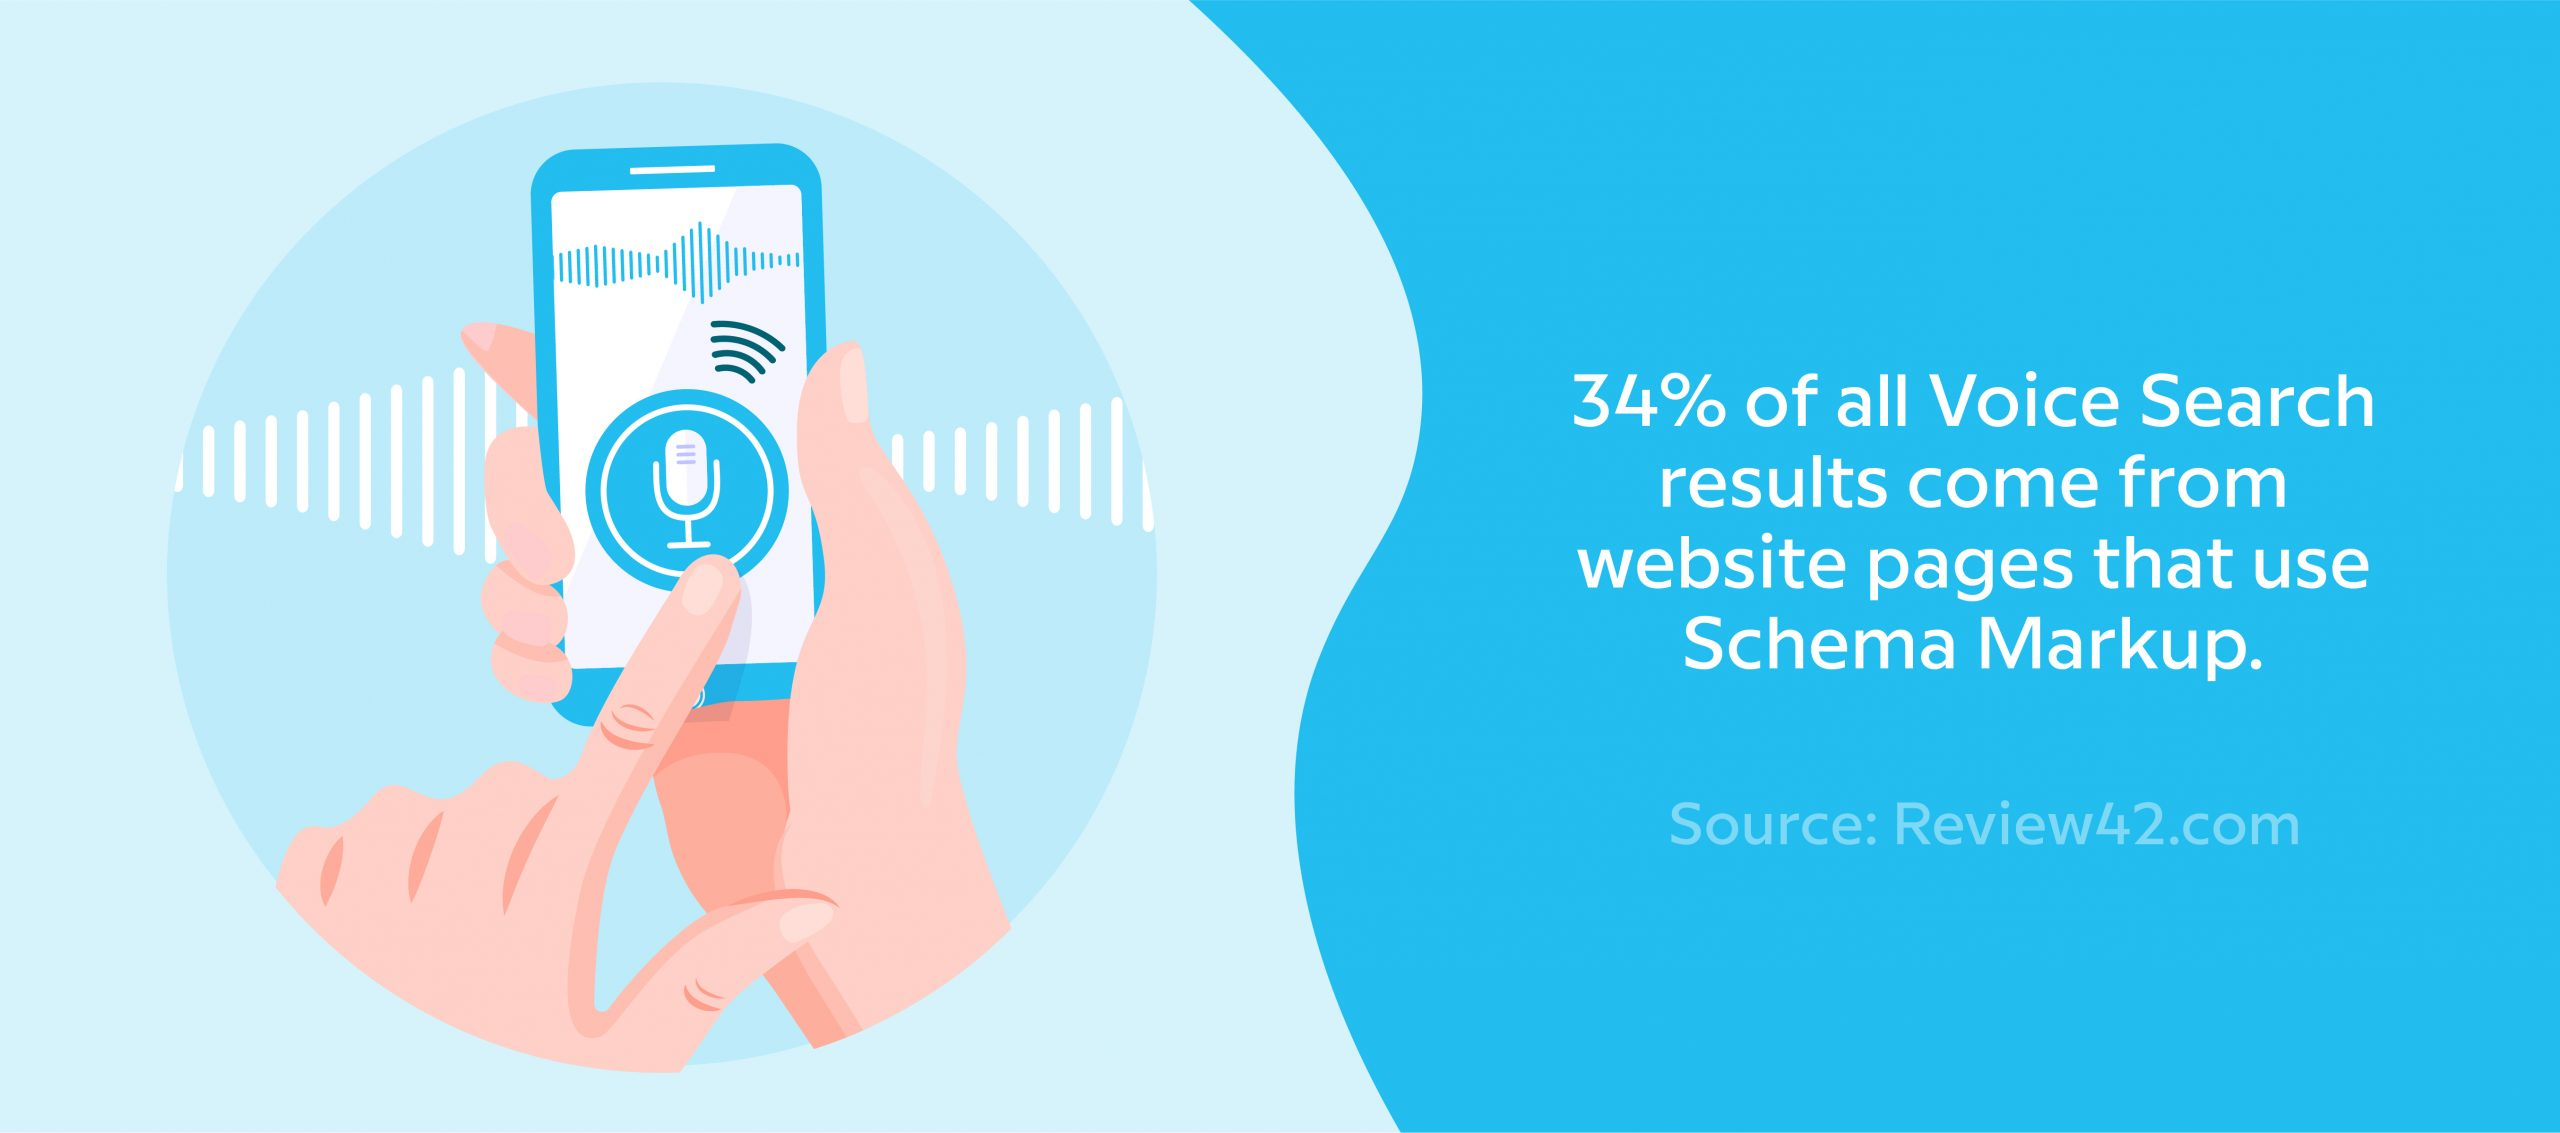 34% of all Voice Search results come from website pages that use Schema Markup.